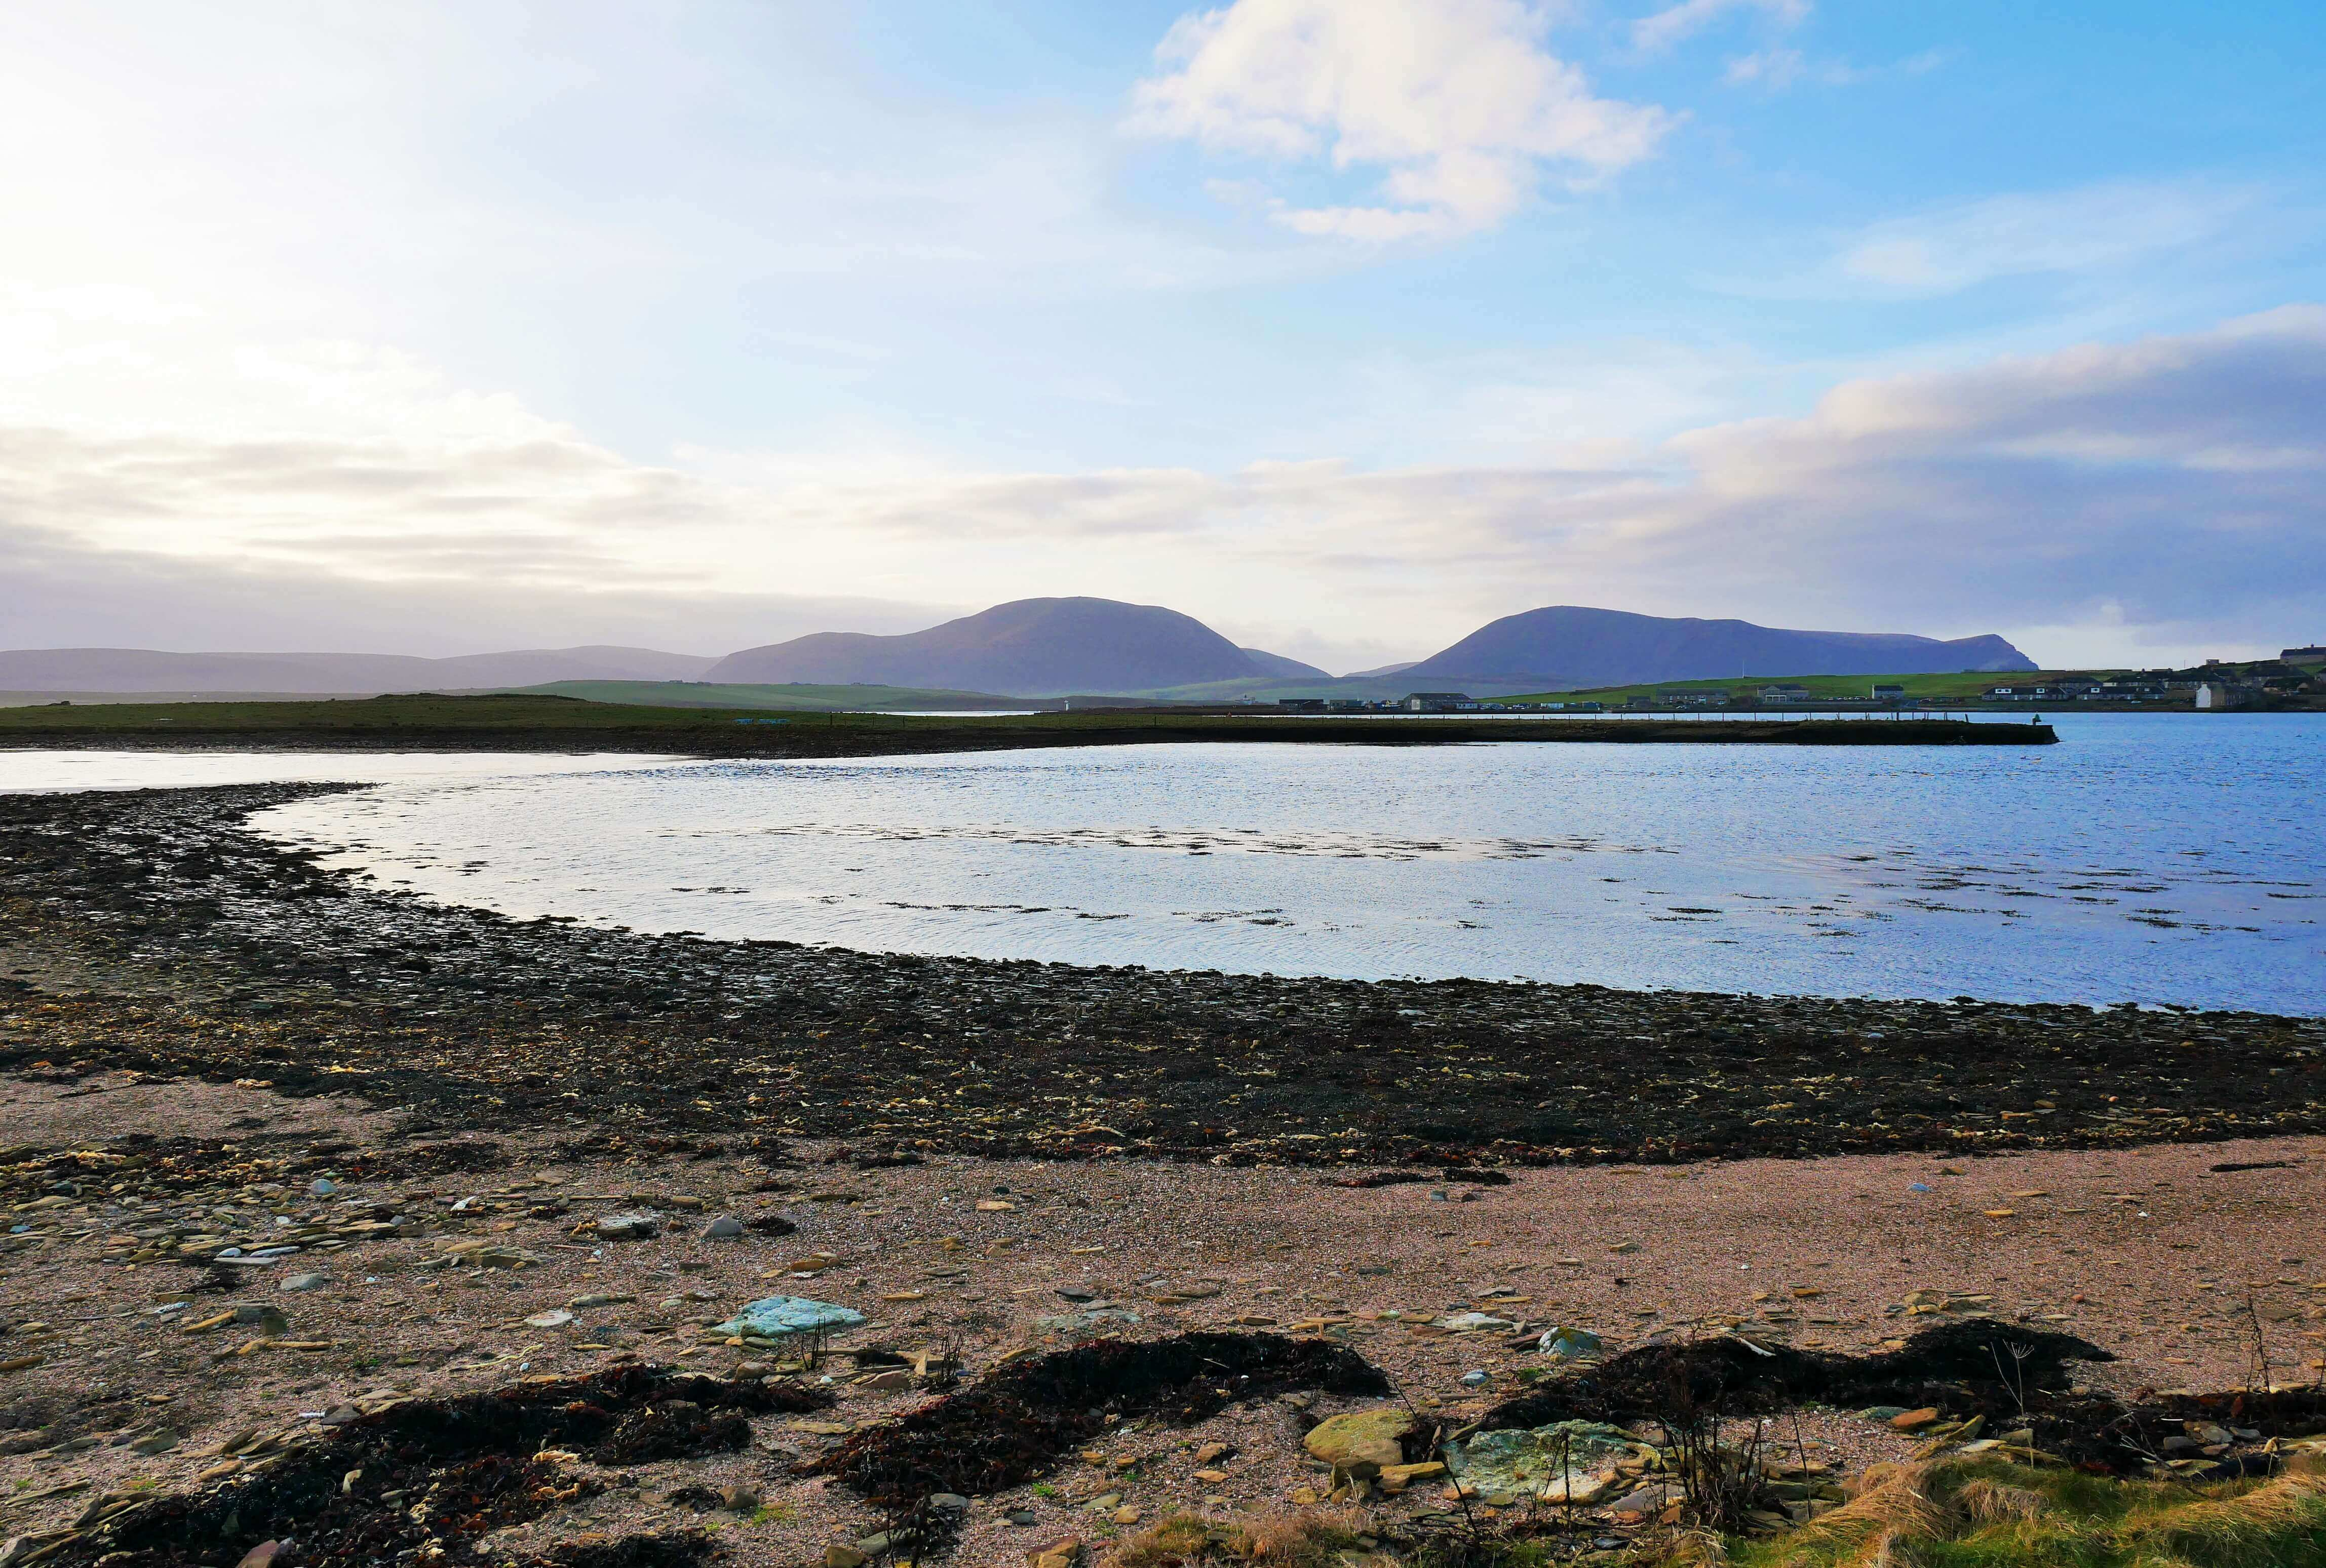 Causeway leading from Inner Holm to Outer Holm at low tide, Stromness, Orkney Islands, Scotland, UK.